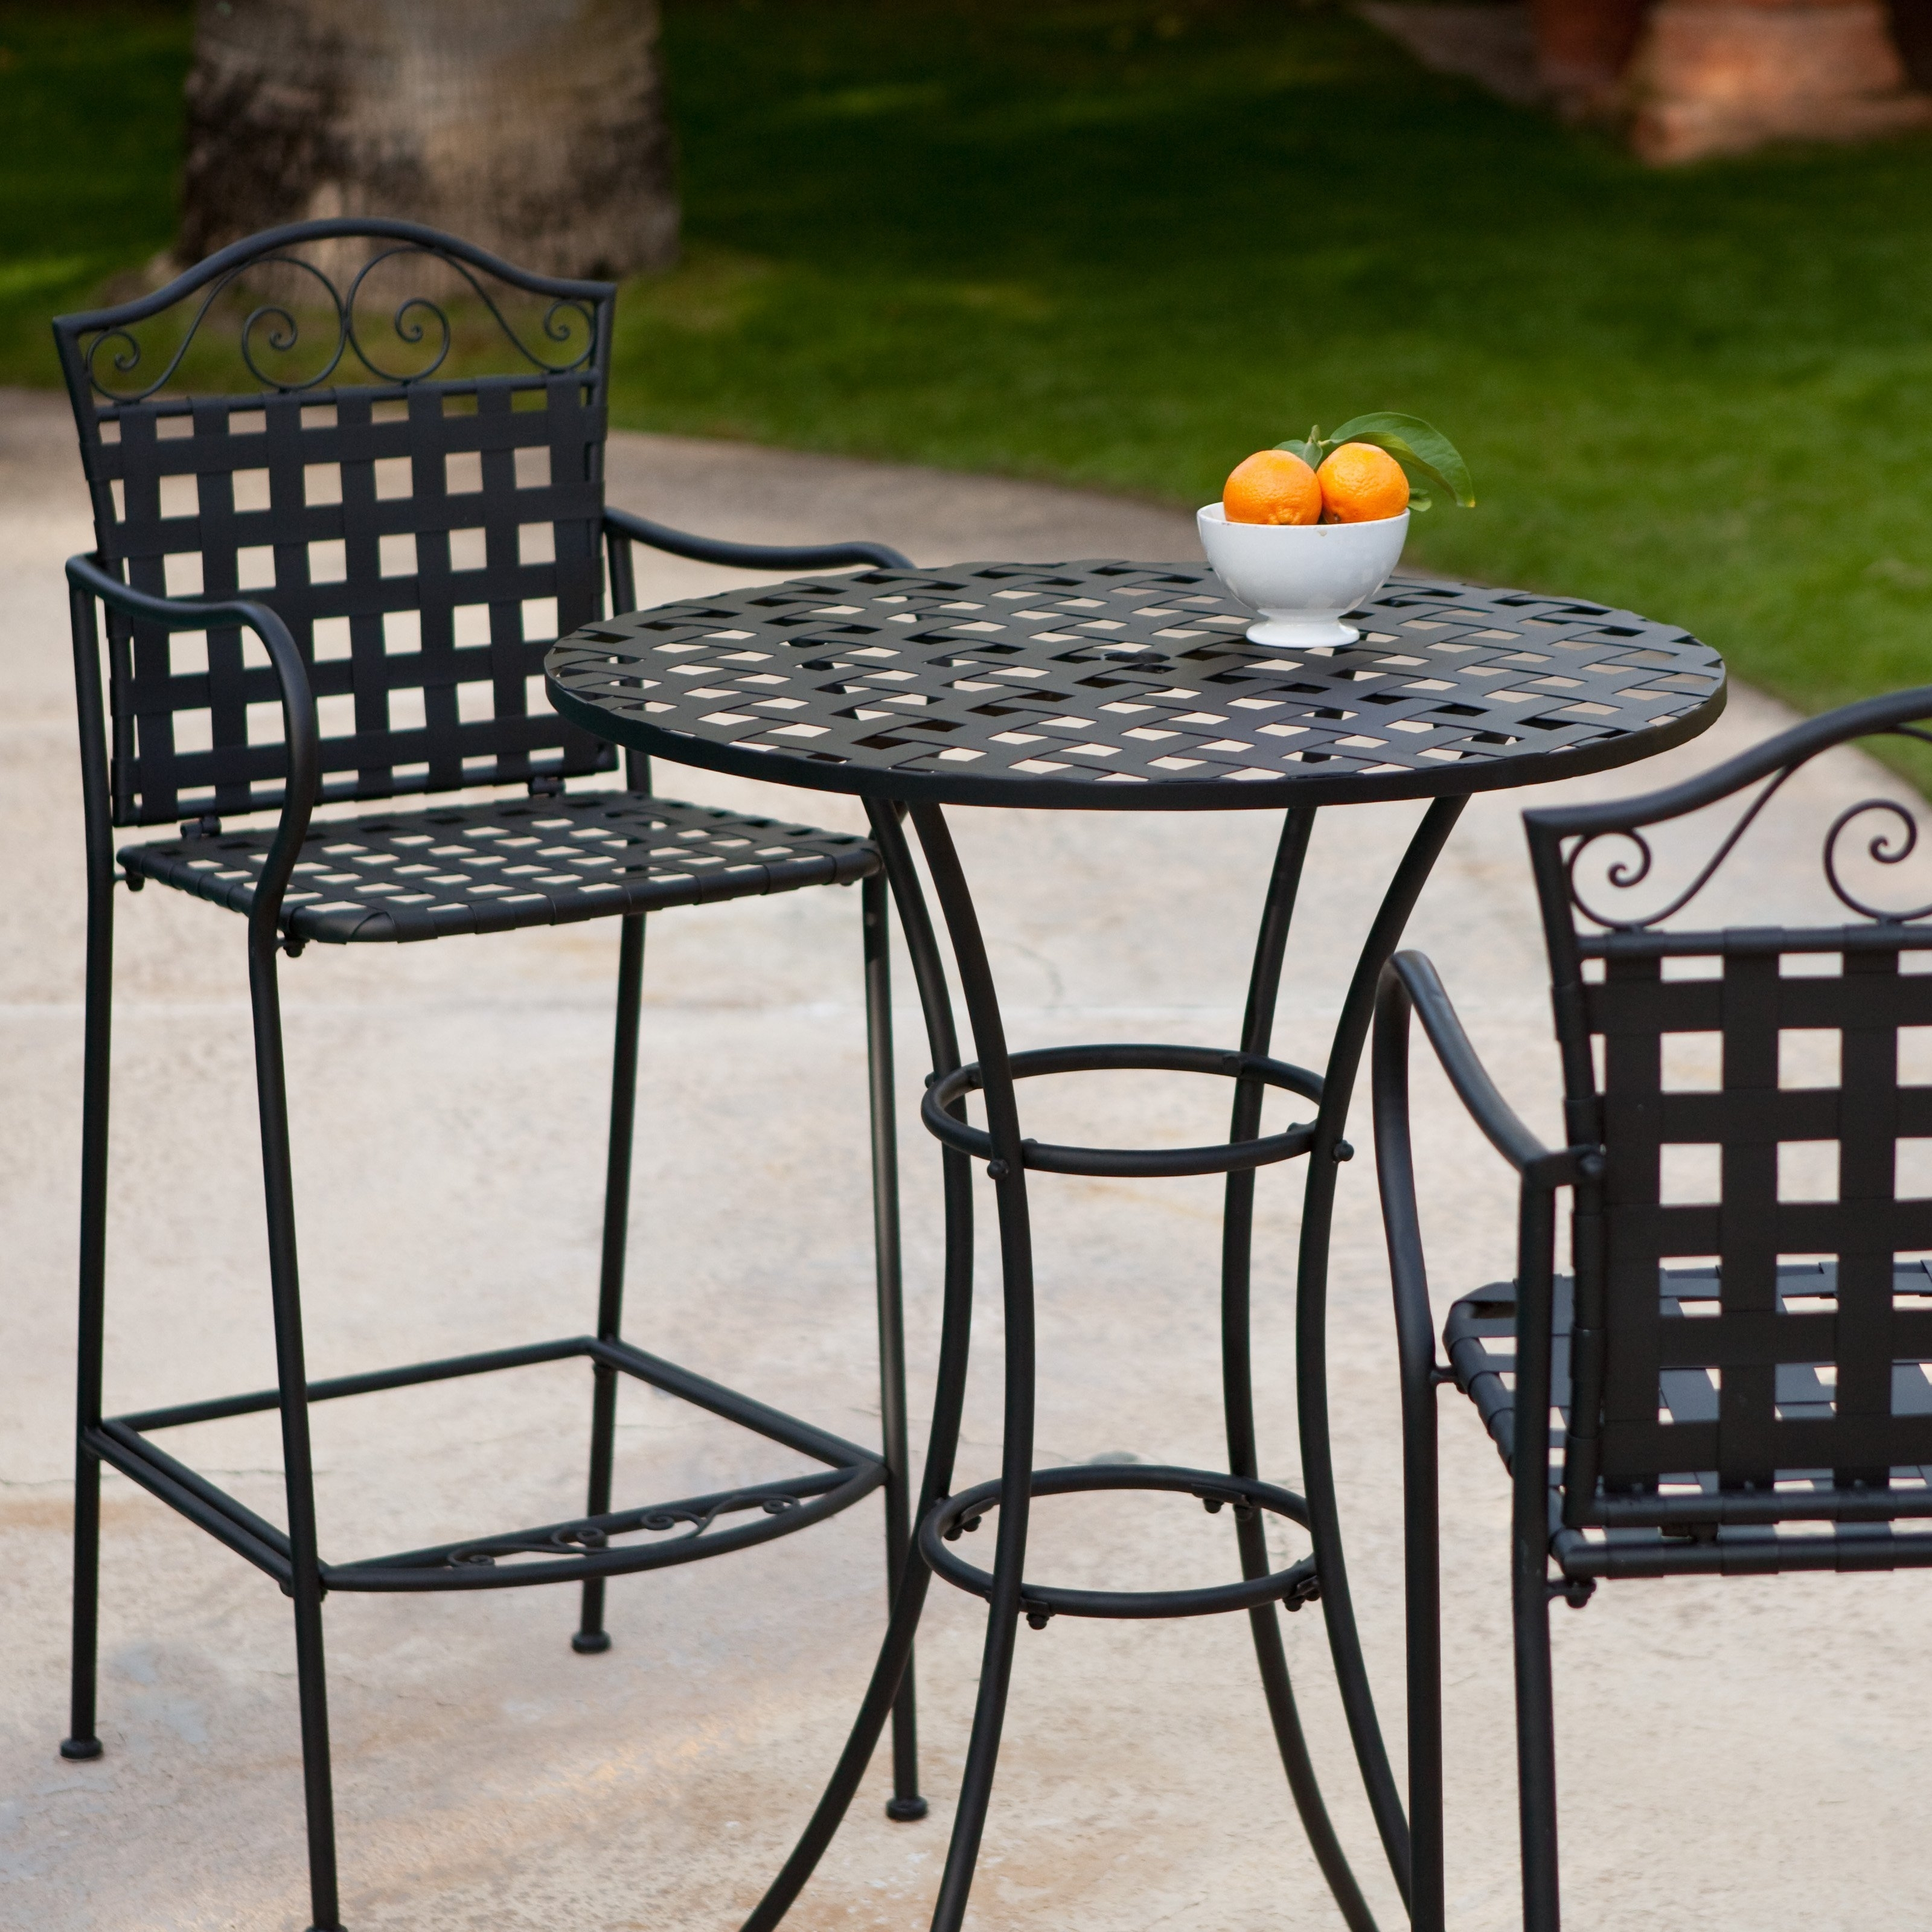 Absorbing Four People Plus Small Patio Table Also Chairs Along With With Most Current Small Patio Tables With Umbrellas Hole (View 2 of 20)